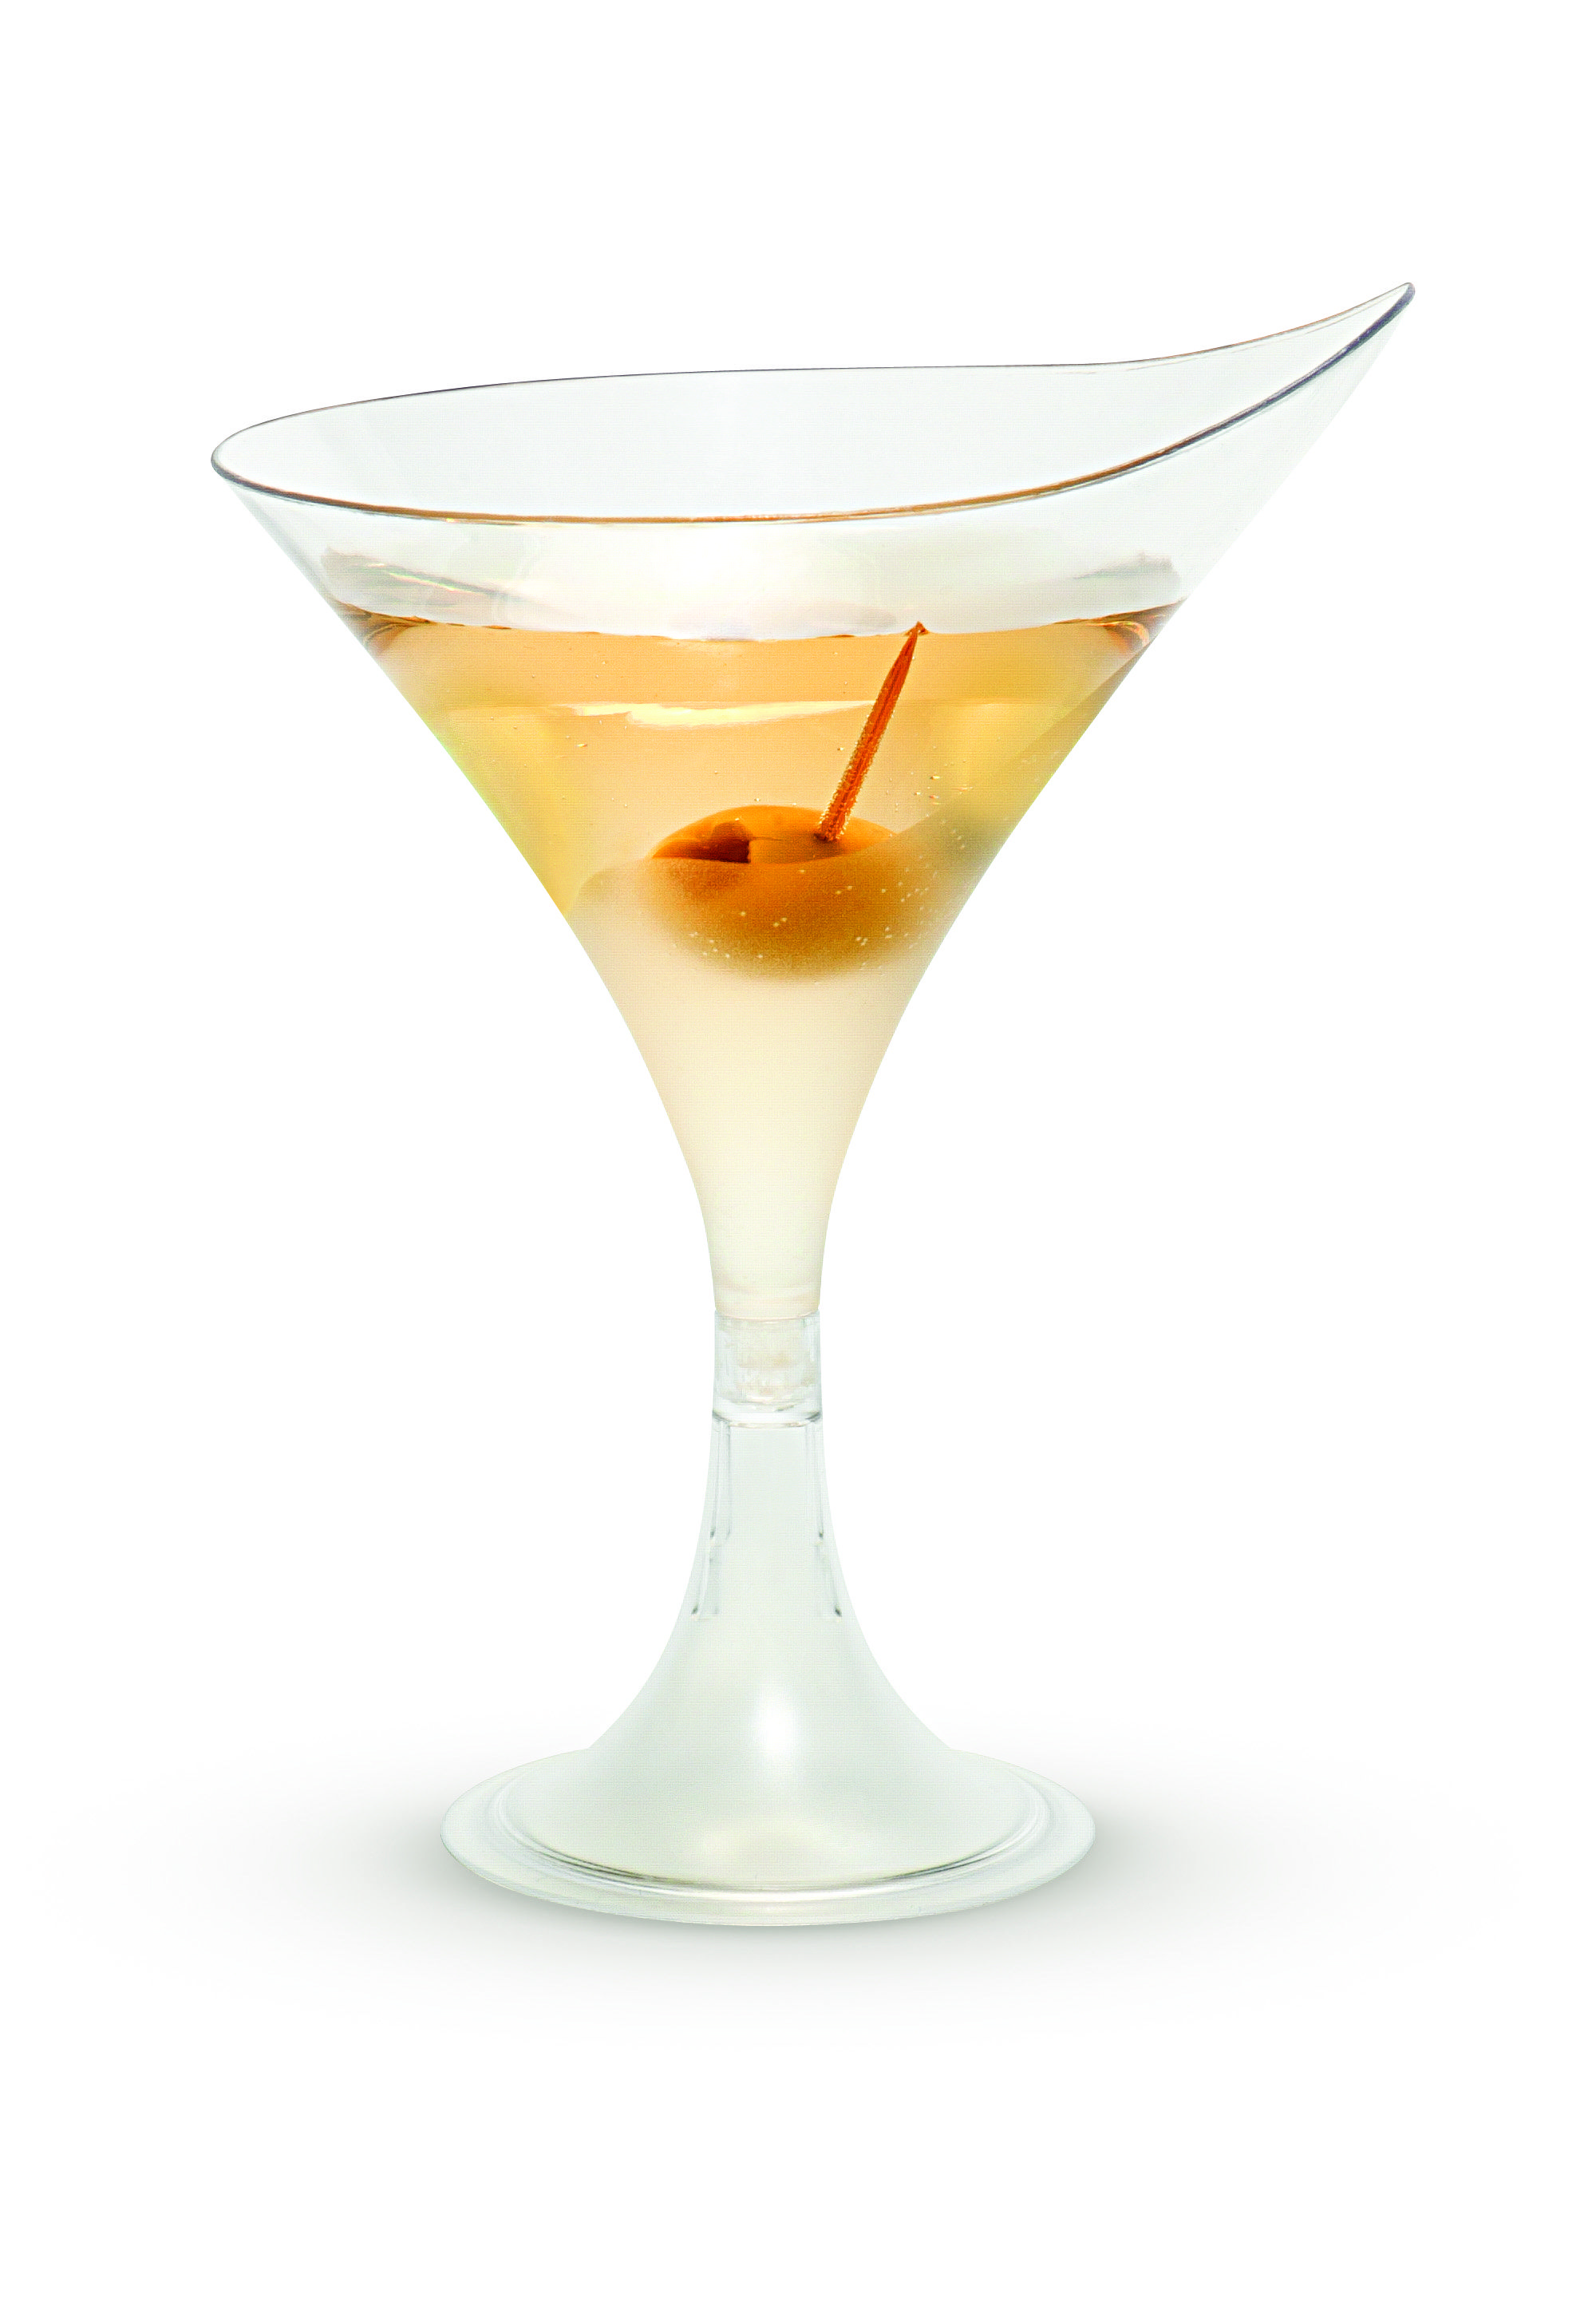 The Ultimate Disposable Martini Glass #disposable #martiniglass #weddingsupplies #catering